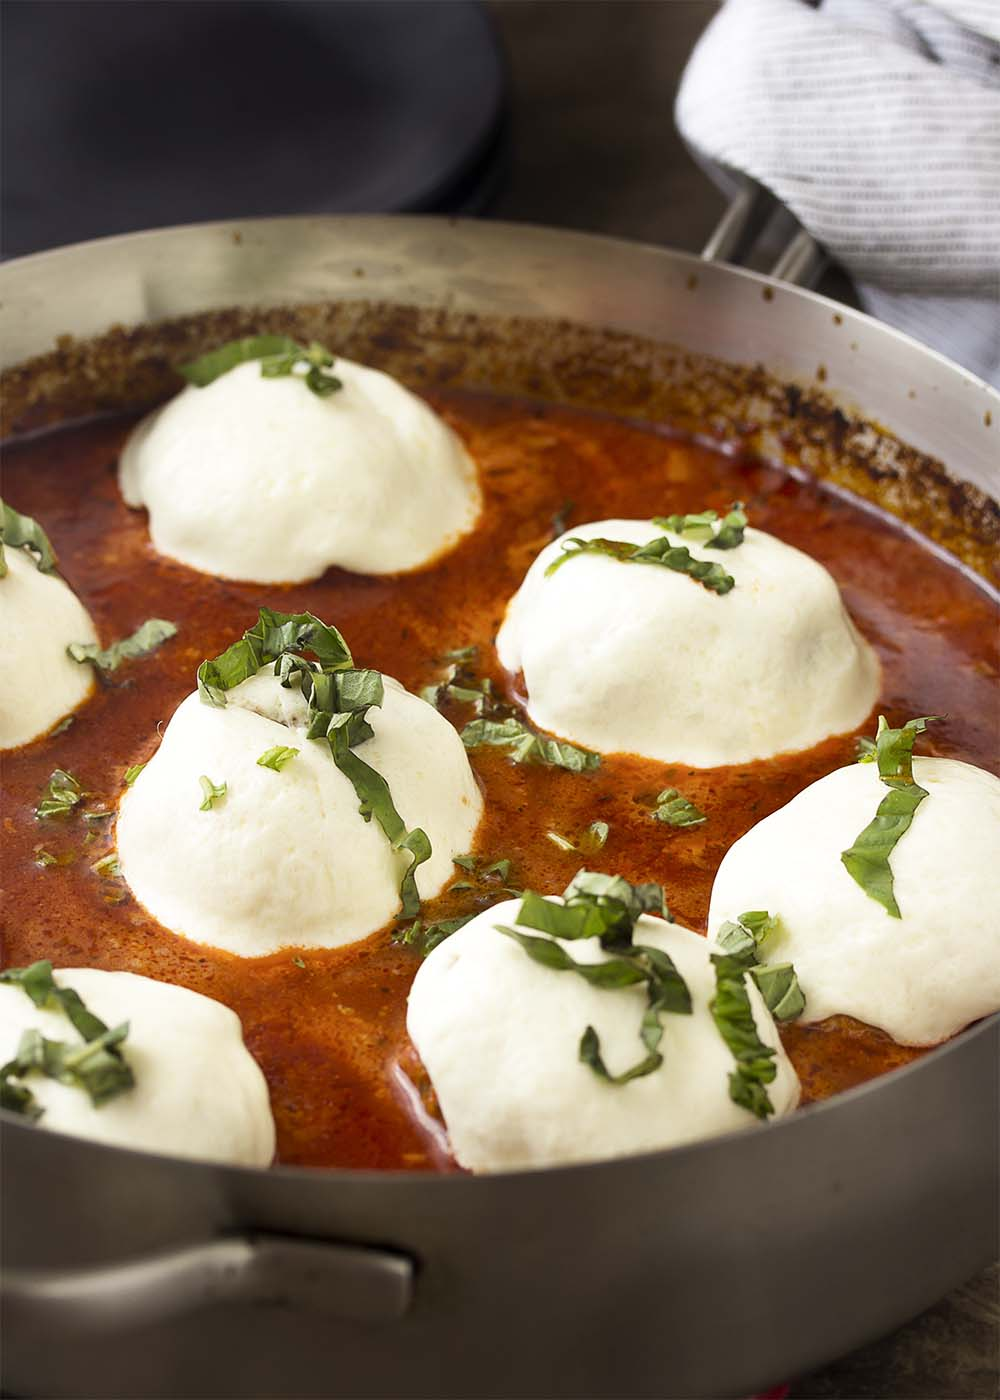 Italian meatballs in a skillet of marinara sauce topped with melted mozzarella and sliced basil.